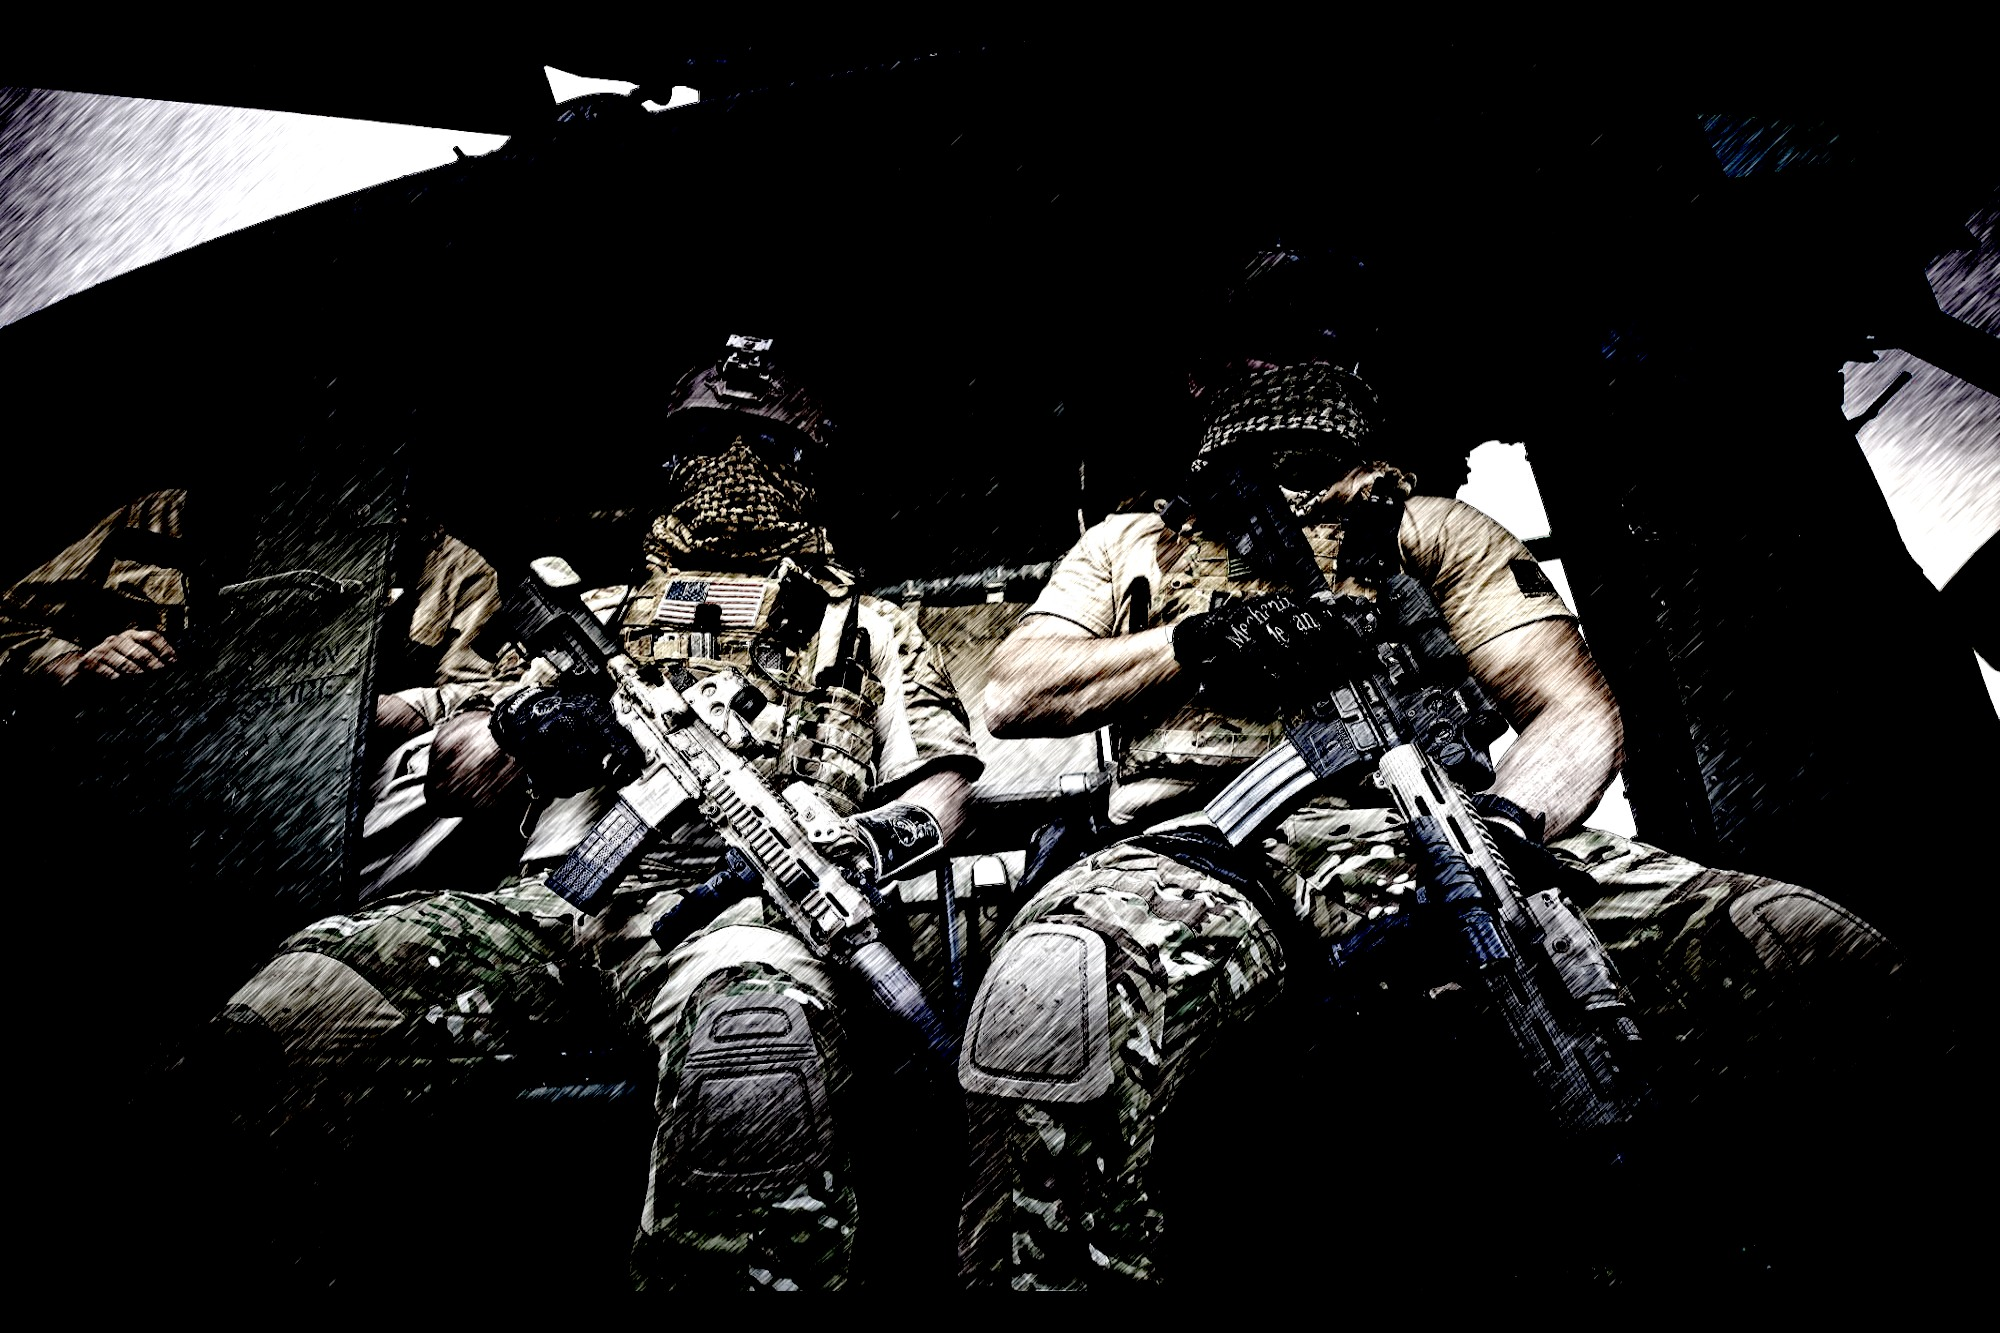 Army Special Forces Wallpaper Next wallpaper 2000x1333